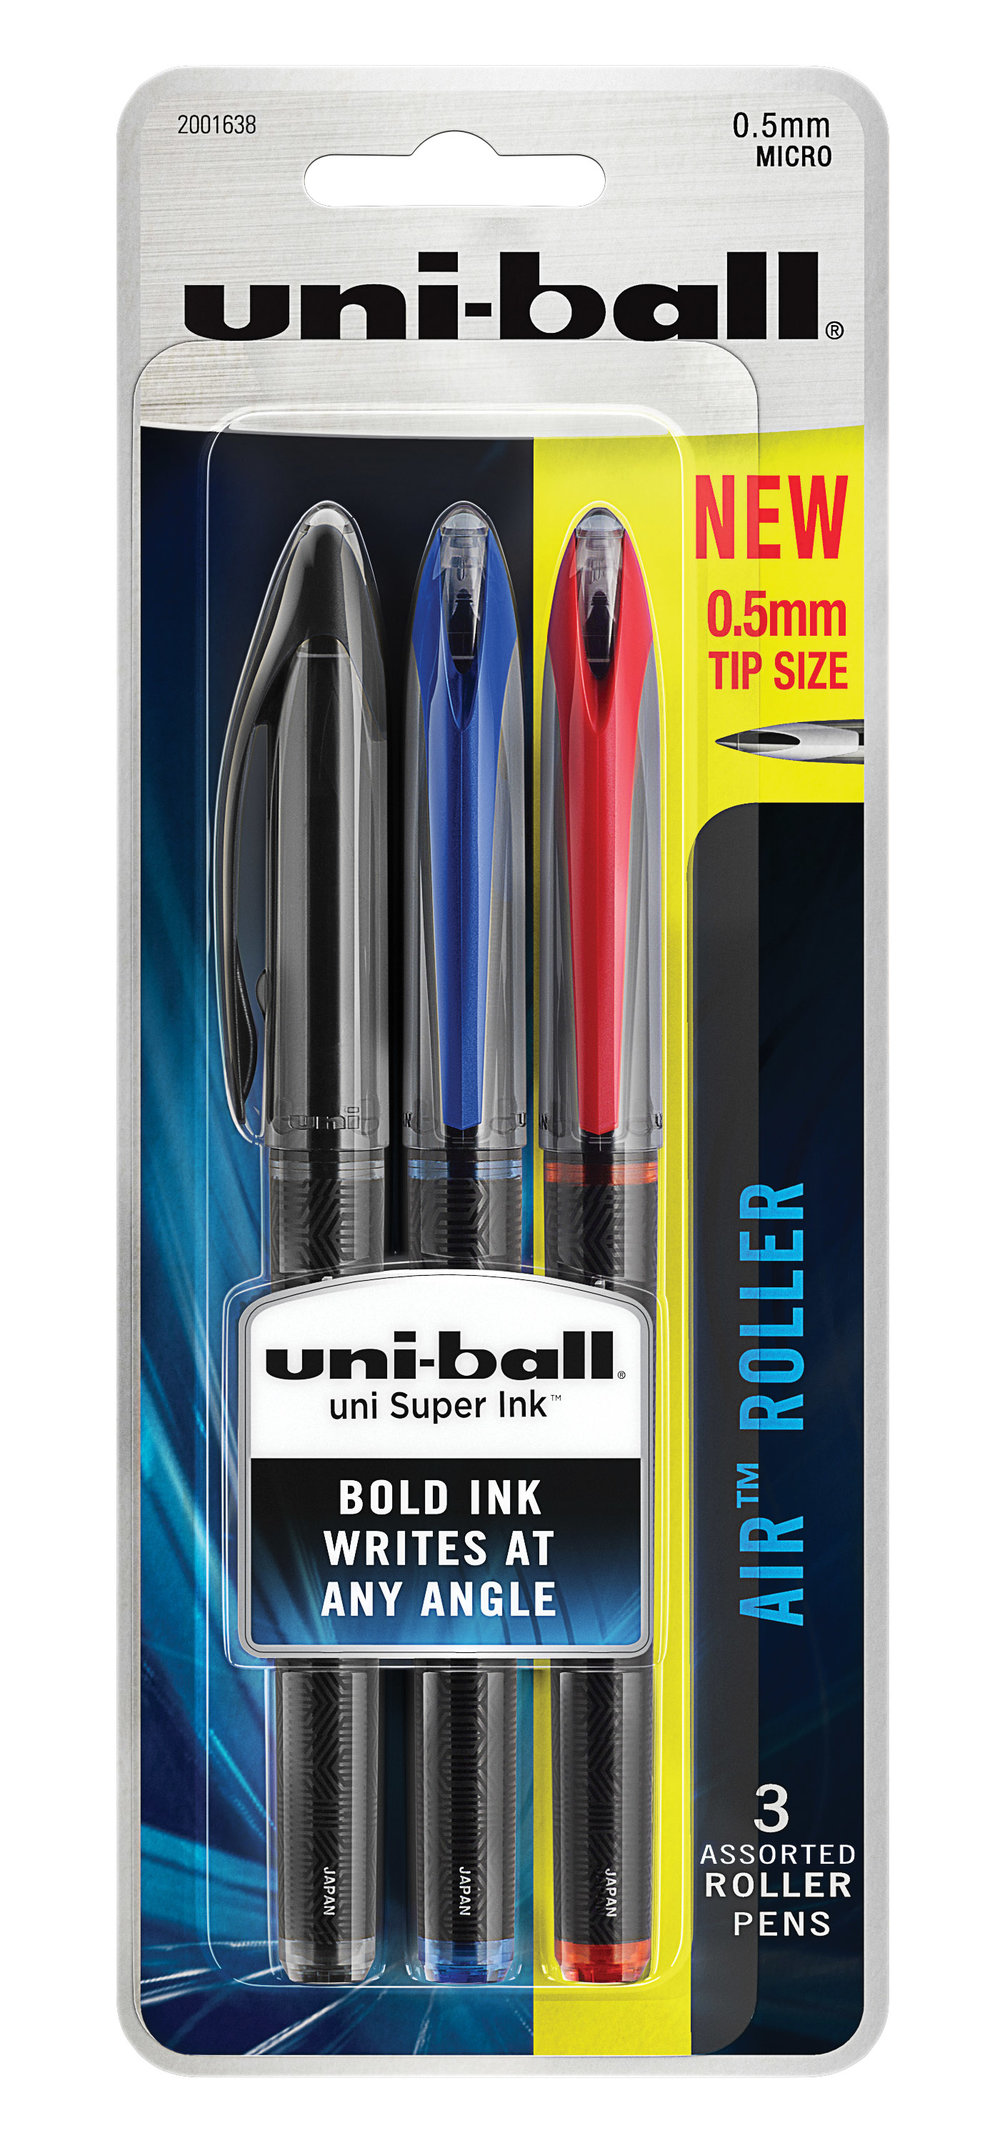 Uniball_Assorted_RGB.jpg